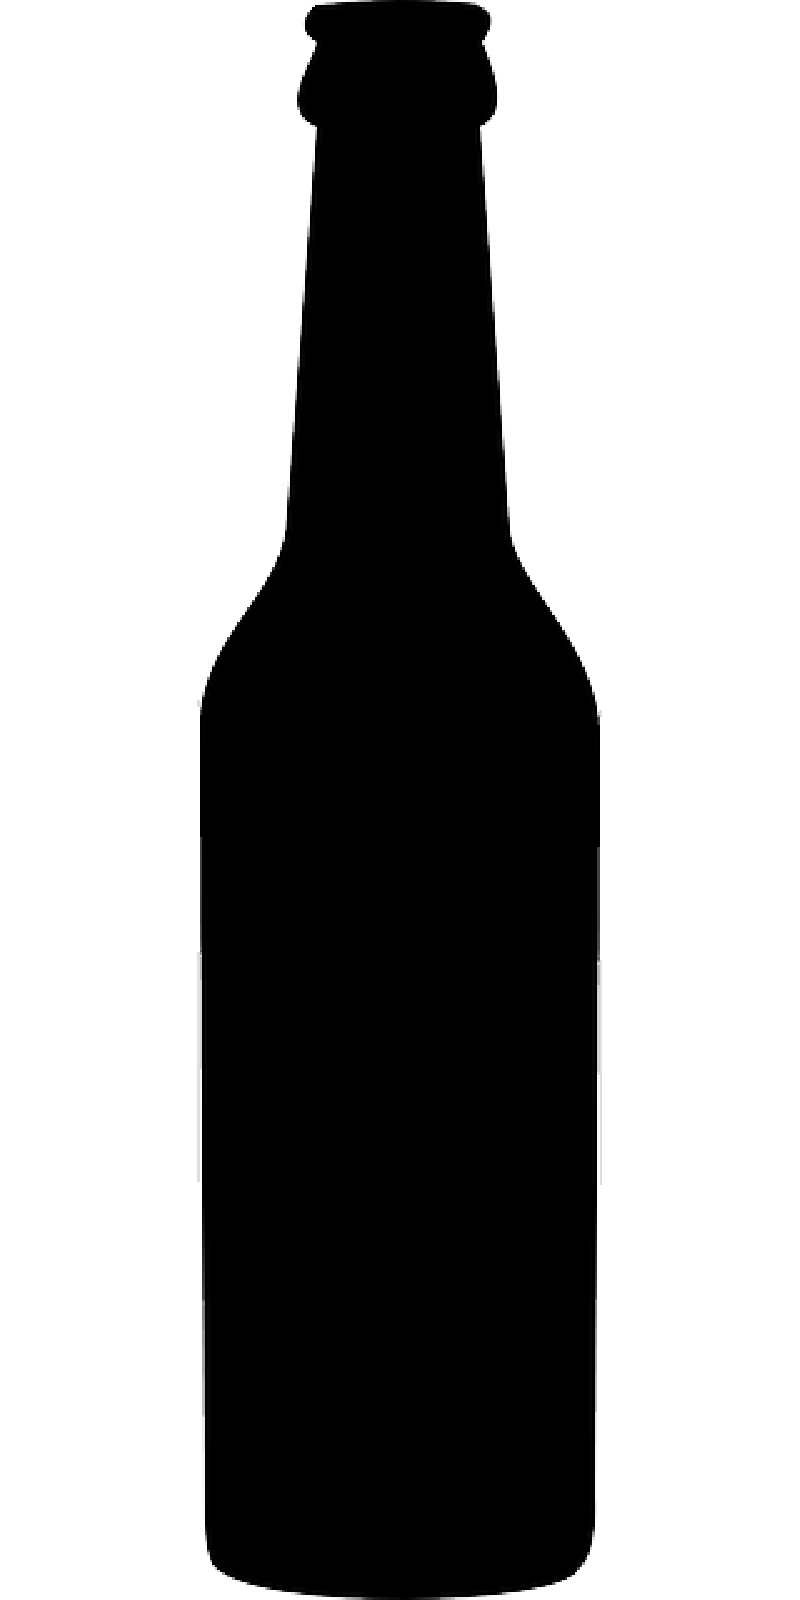 Beer bottle clipart black and white clipart transparent library Free Beer Bottle Clip Art, Download Free Clip Art, Free Clip Art on ... clipart transparent library